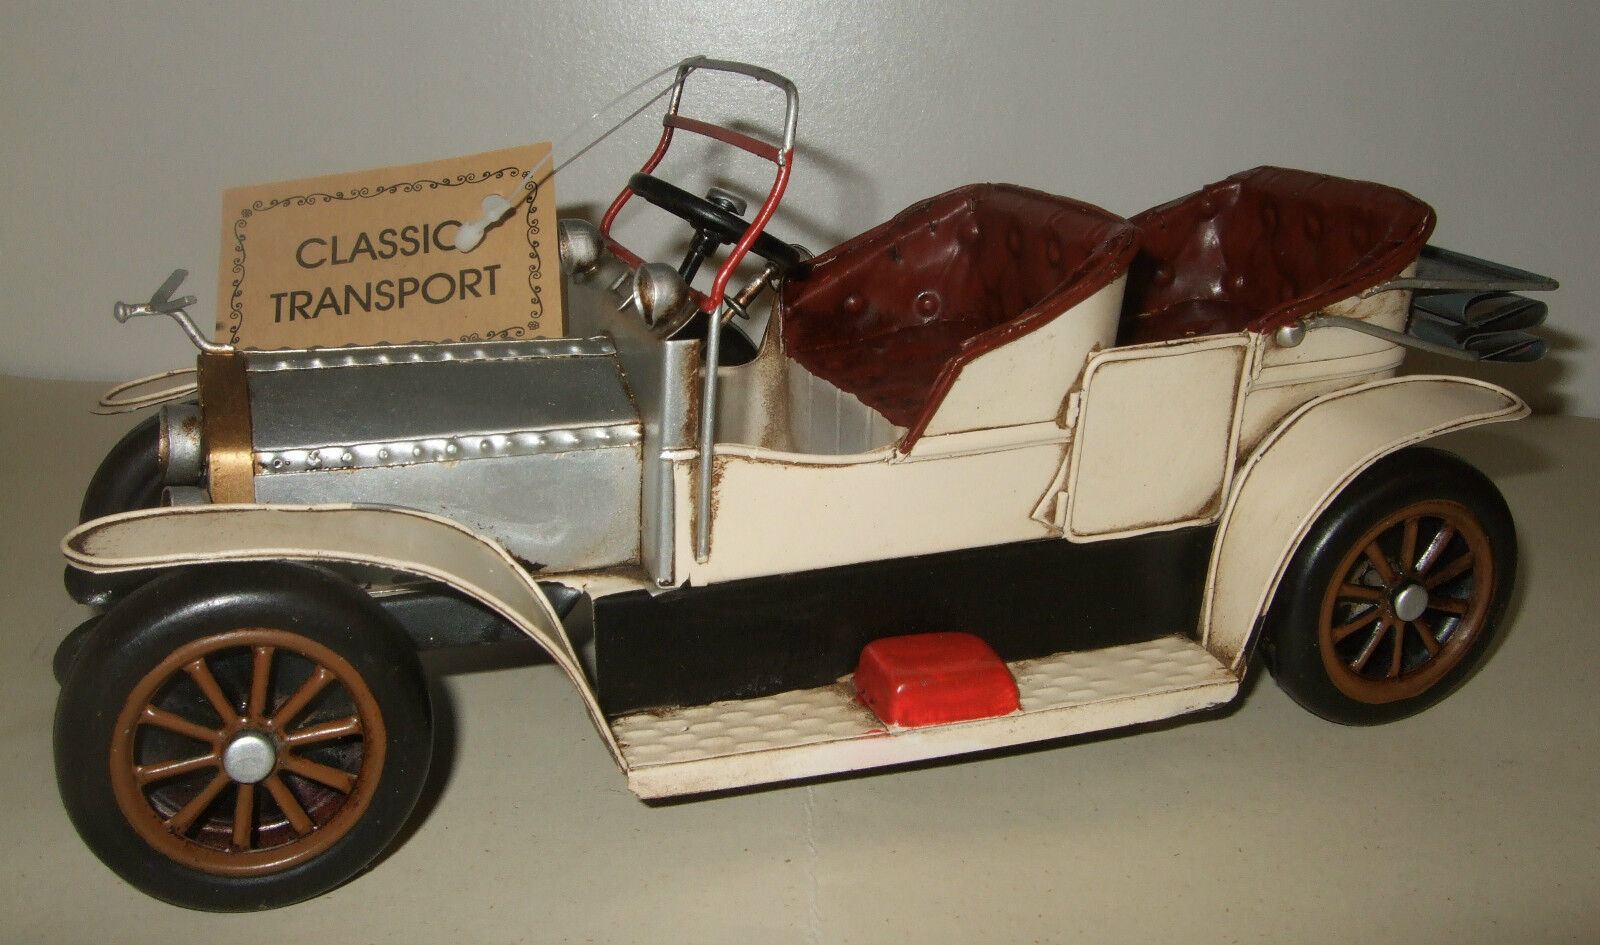 Tin Plate Model of a Classic Transport Cream Motorcar Ornament Gift